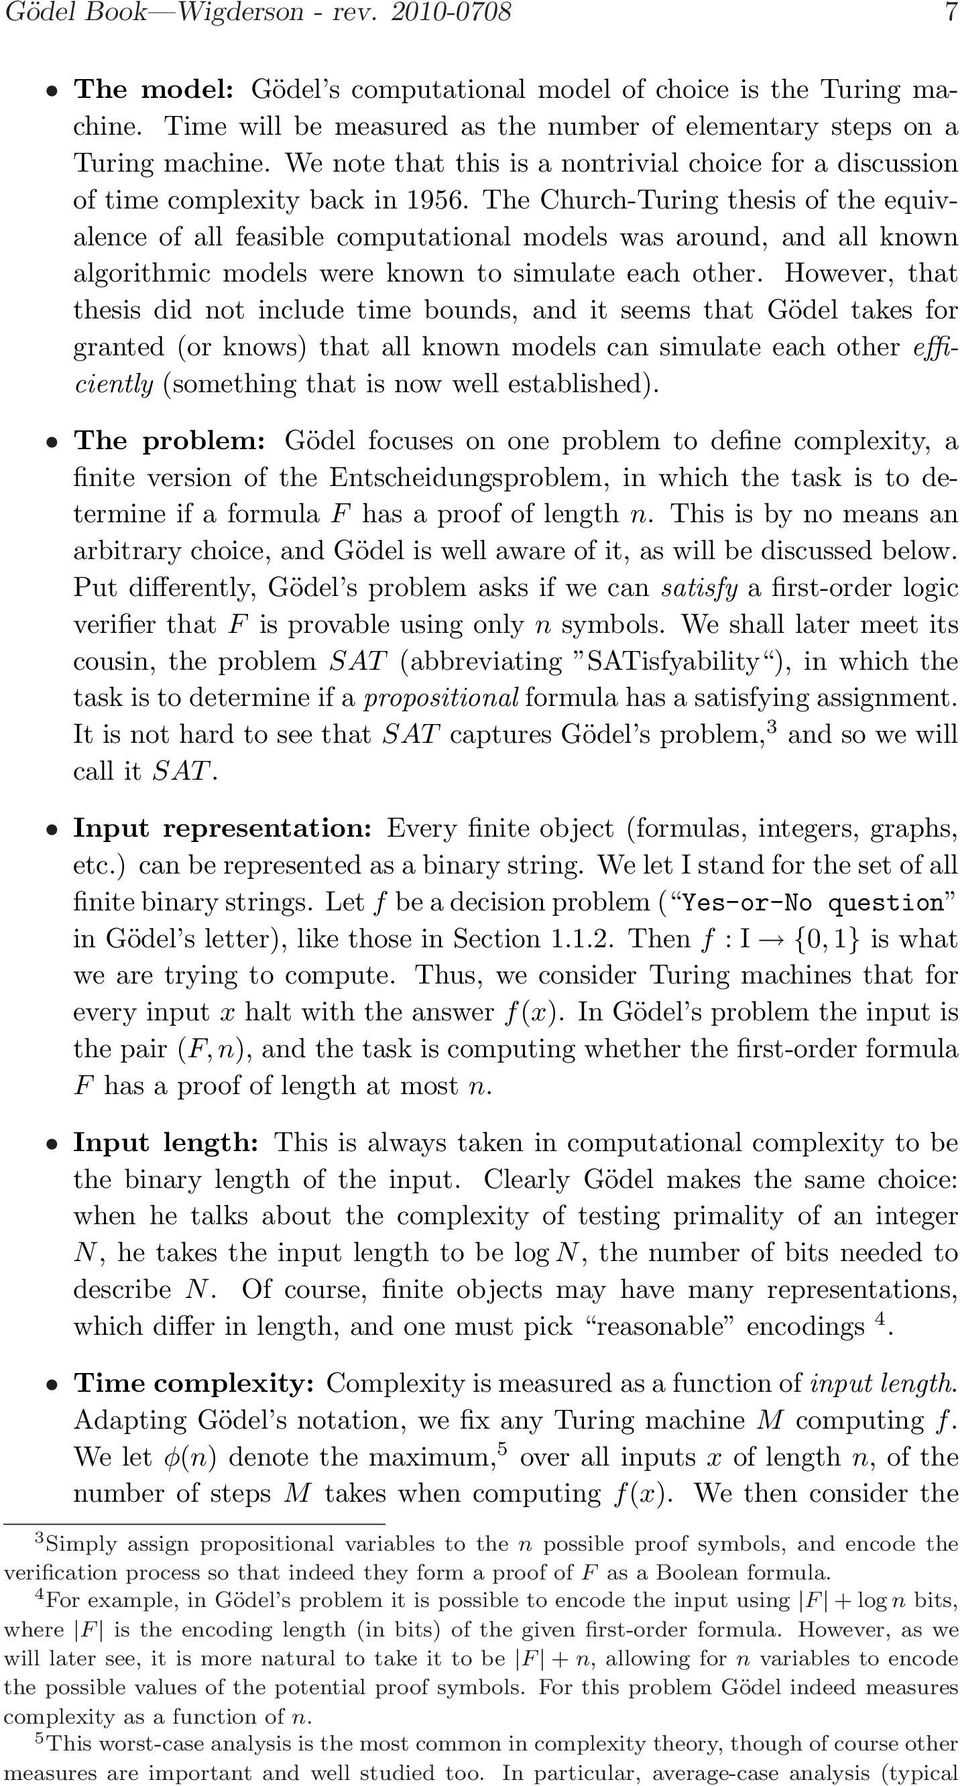 The Church-Turing thesis of the equivalence of all feasible computational models was around, and all known algorithmic models were known to simulate each other.